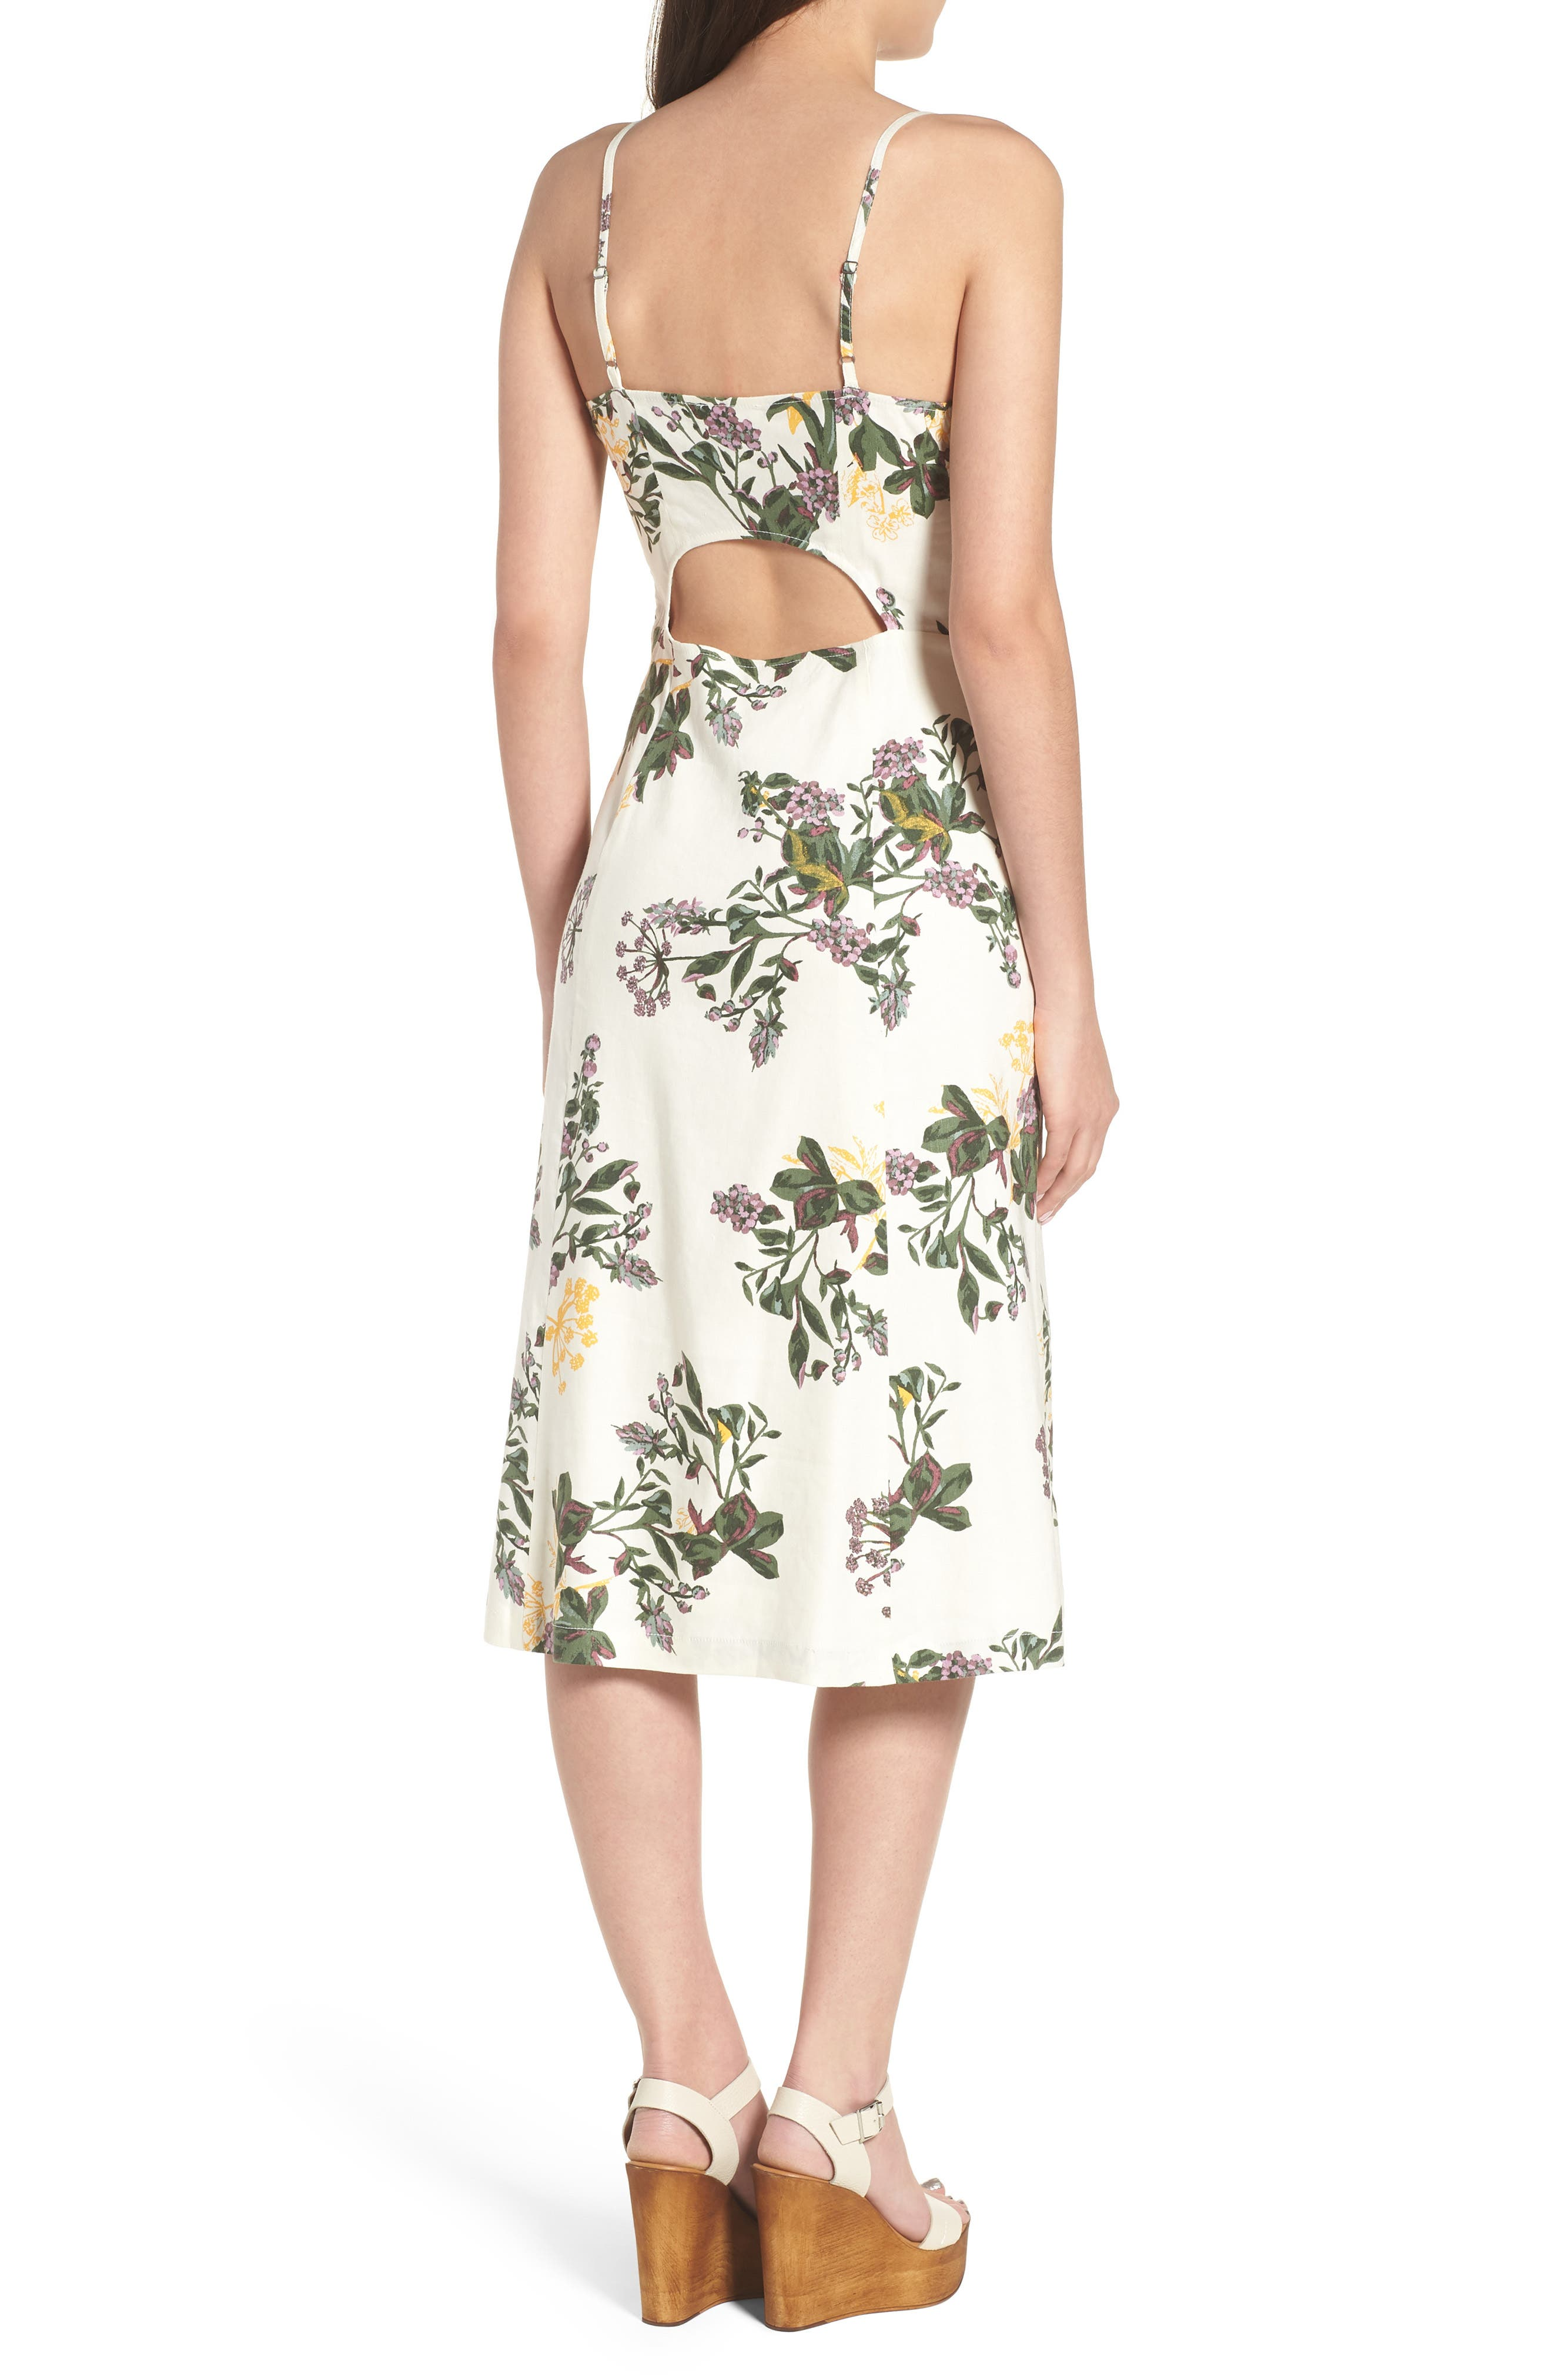 Floral Print Midi Dress,                             Alternate thumbnail 2, color,                             Ivory Ghost Floral